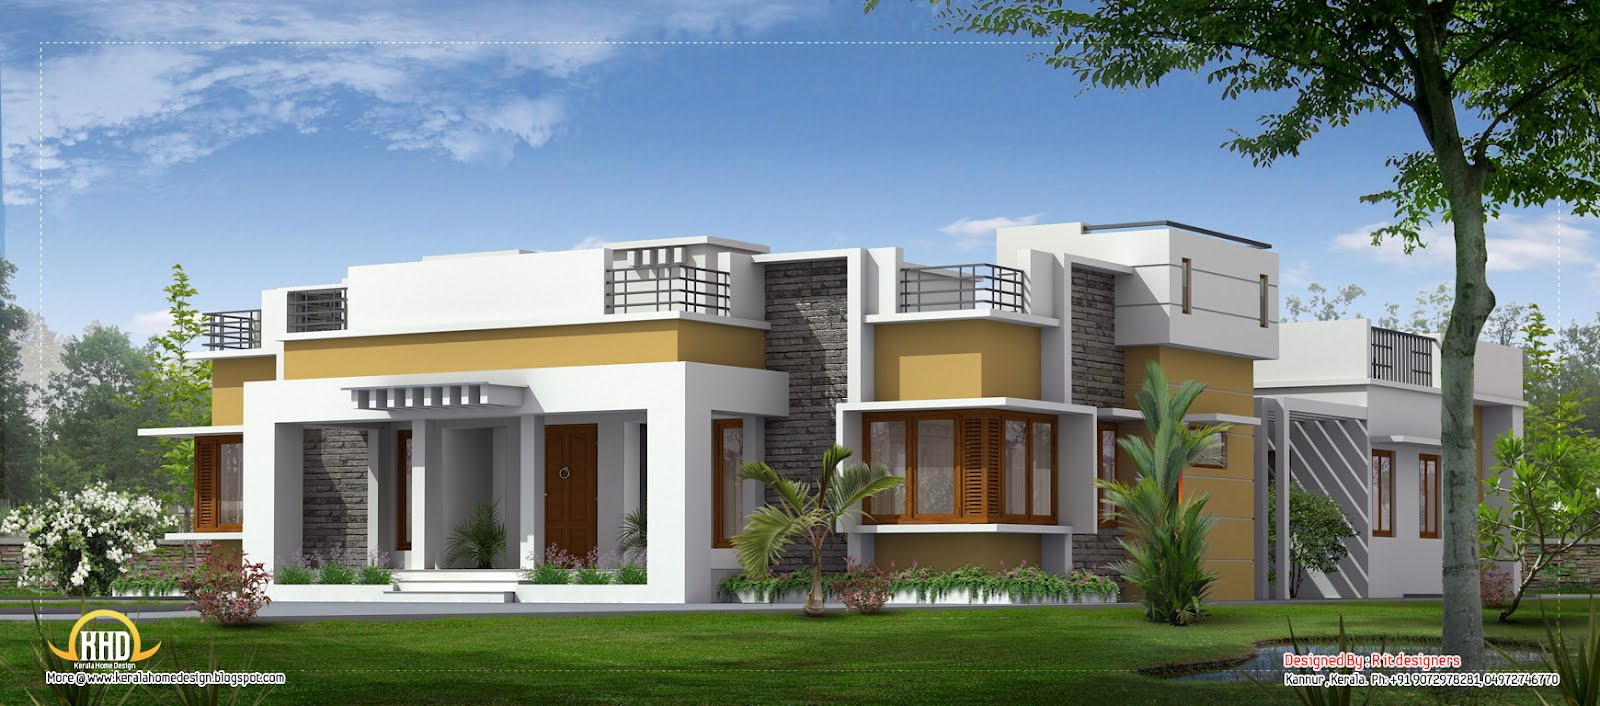 Beautiful single floor home 2910 sq ft kerala home for Single floor house